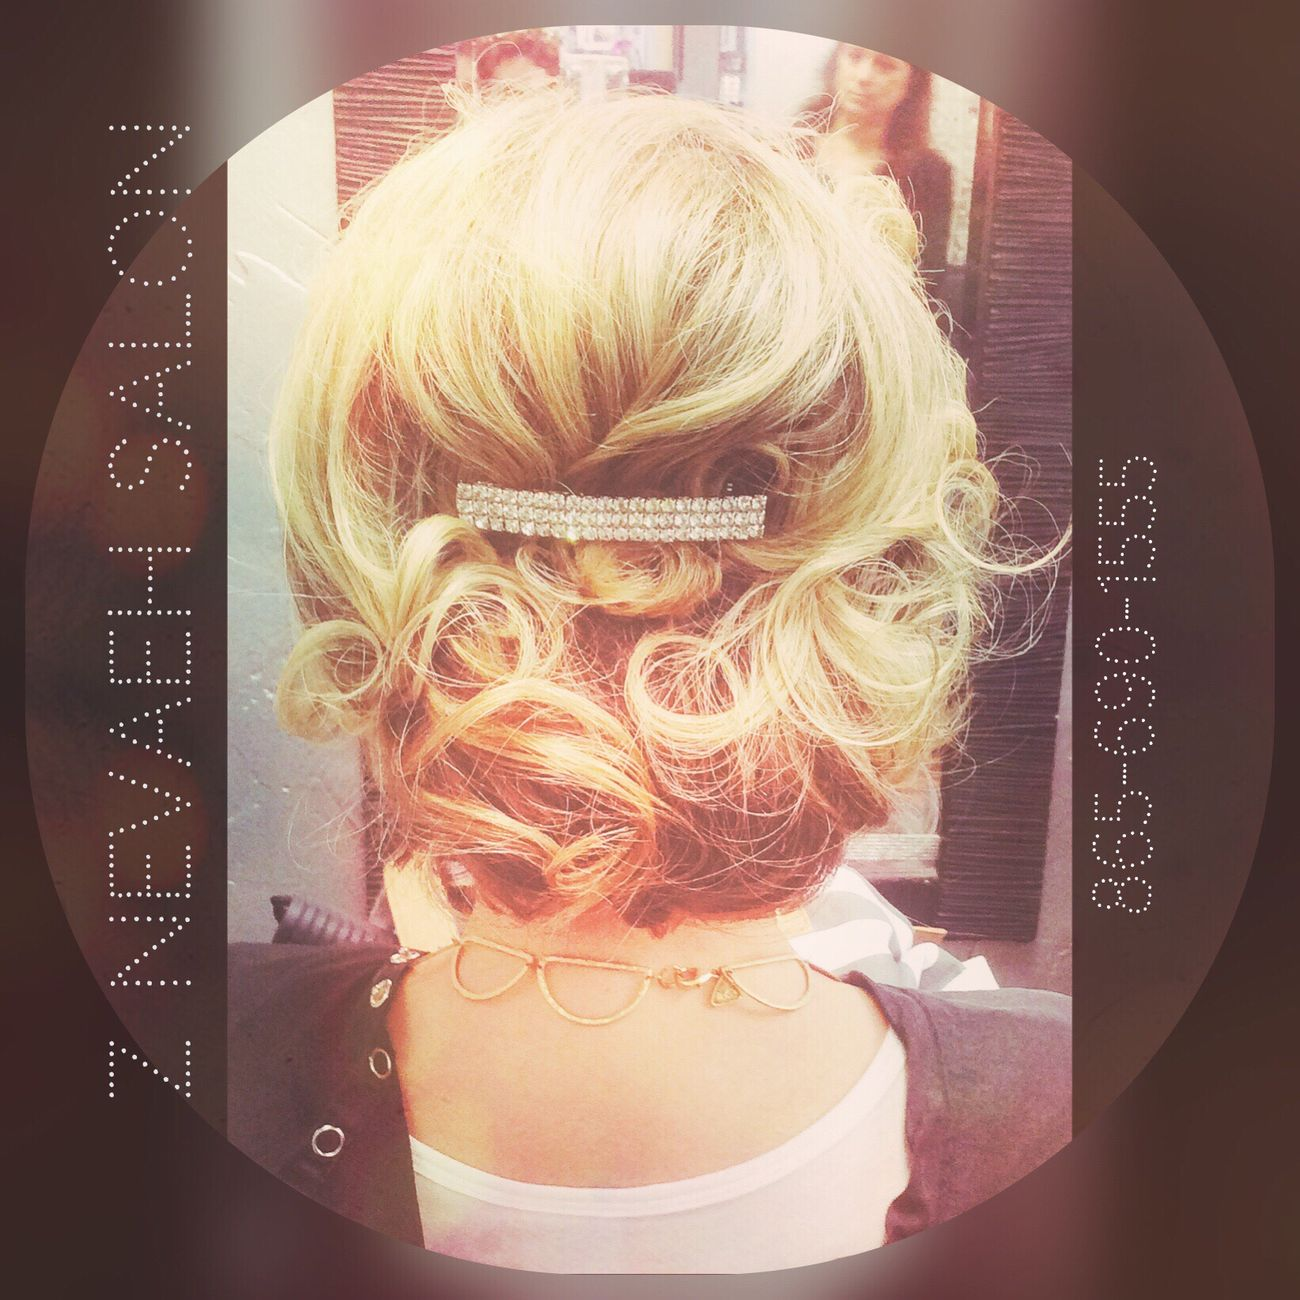 Vintage Hairstyle @znevaehsalon @lorealprous Check This Out Knoxvillesalon Lorealprous Lorealprofessionnelsalon Teamznevaeh @znevaehsalon Salon Vintage Fashion Hairstyle Hairtrends Salonlife Promhair Tecniart @znevaehsalon @lorealprofessionnel Z Nevaeh Salon Fashion #style #stylish #love #TagsForLikes #me #cute #photooftheday #nails #hair #beauty #beautiful #instagood #instafashion # Eye4photography # Photooftheday Fashion Hair Hair Lorealpros Glamour Blonde Tecni.art